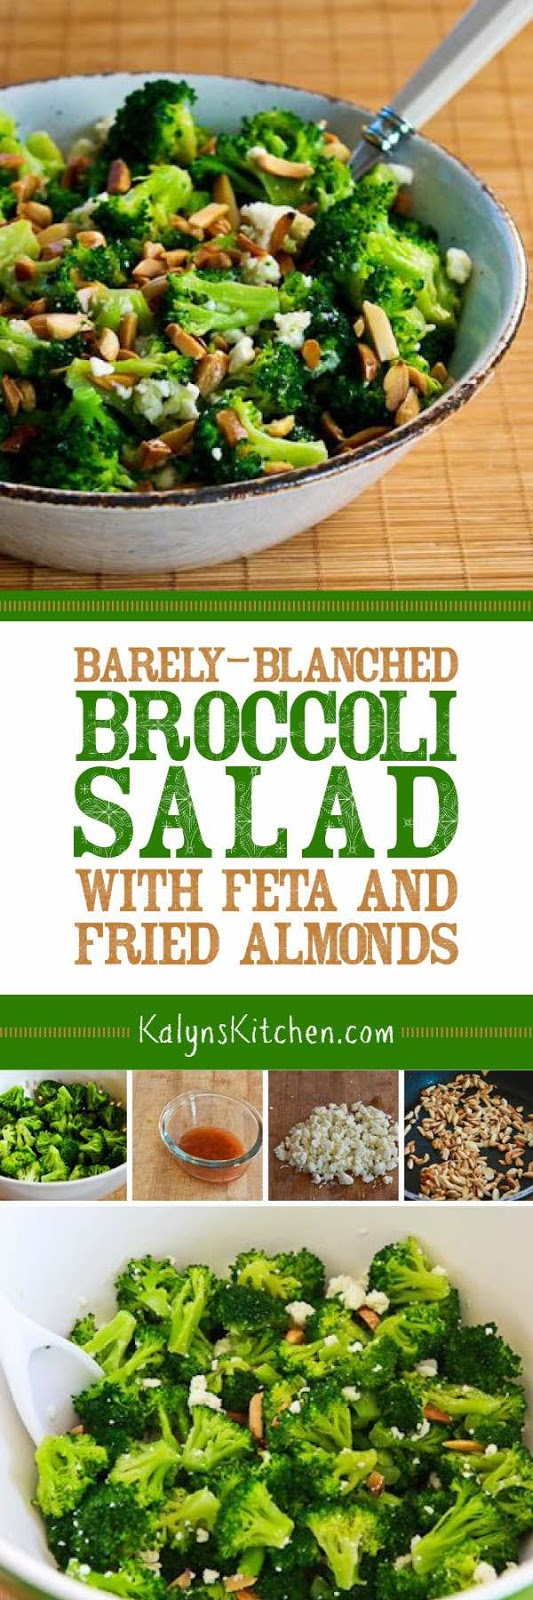 Kalyn's Kitchen®: Barely-Blanched Broccoli Salad with Feta ...